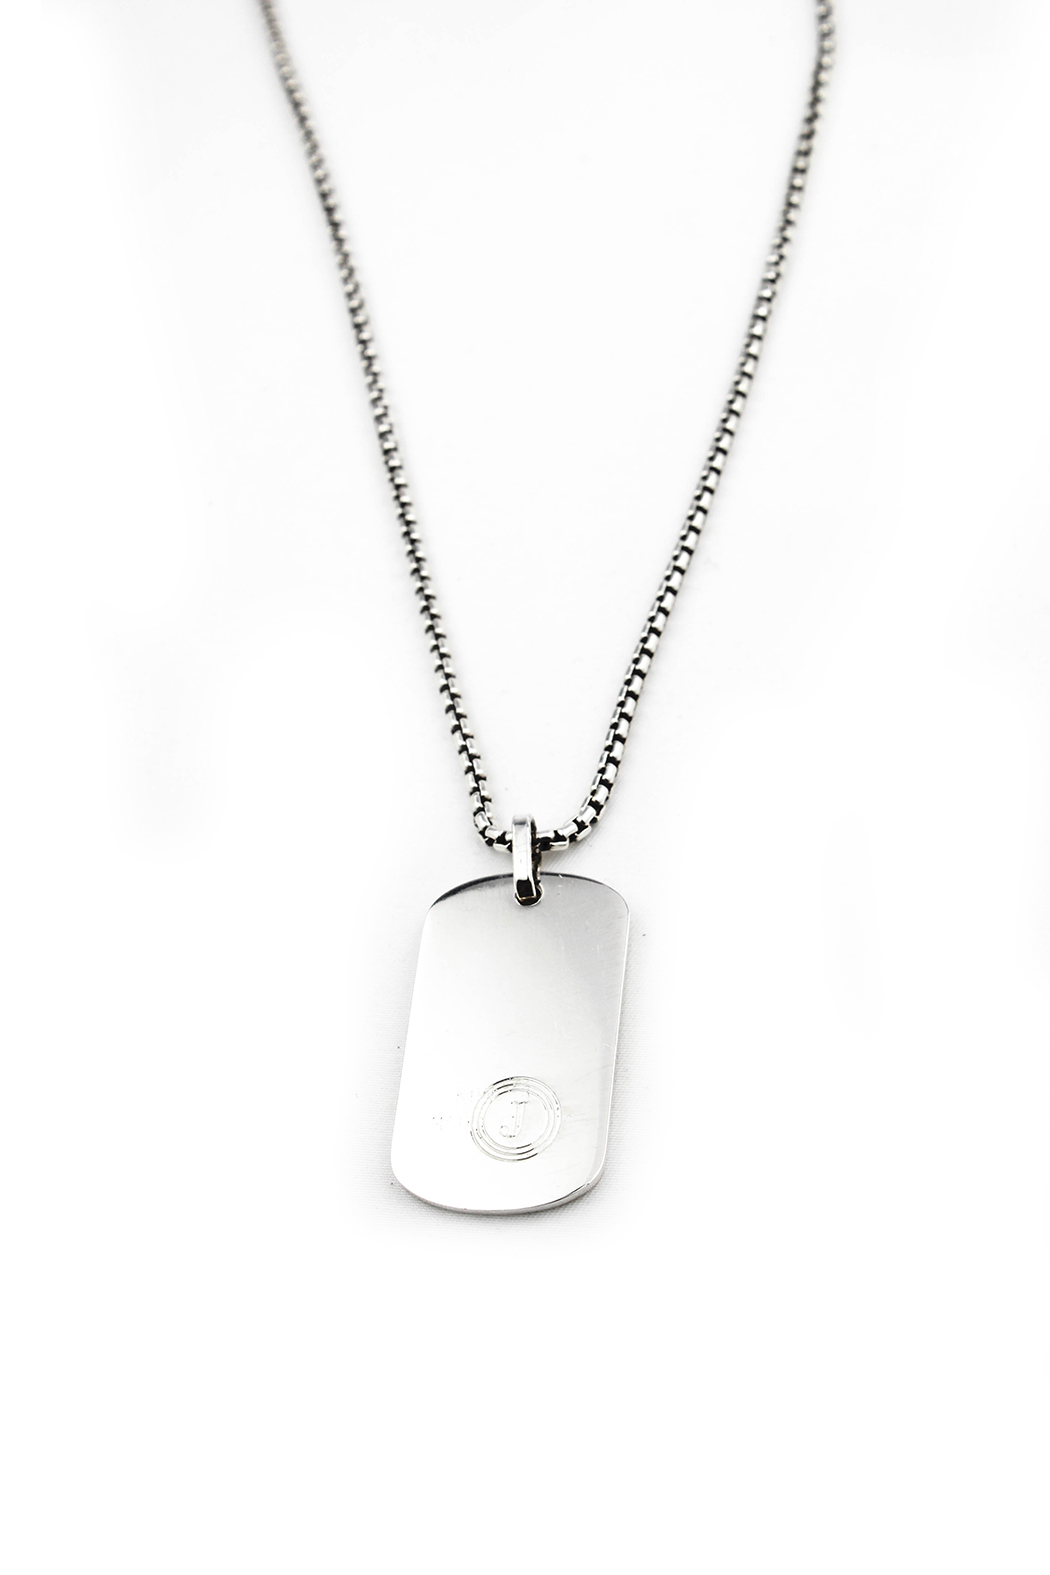 Caudillo Dog Tag 1